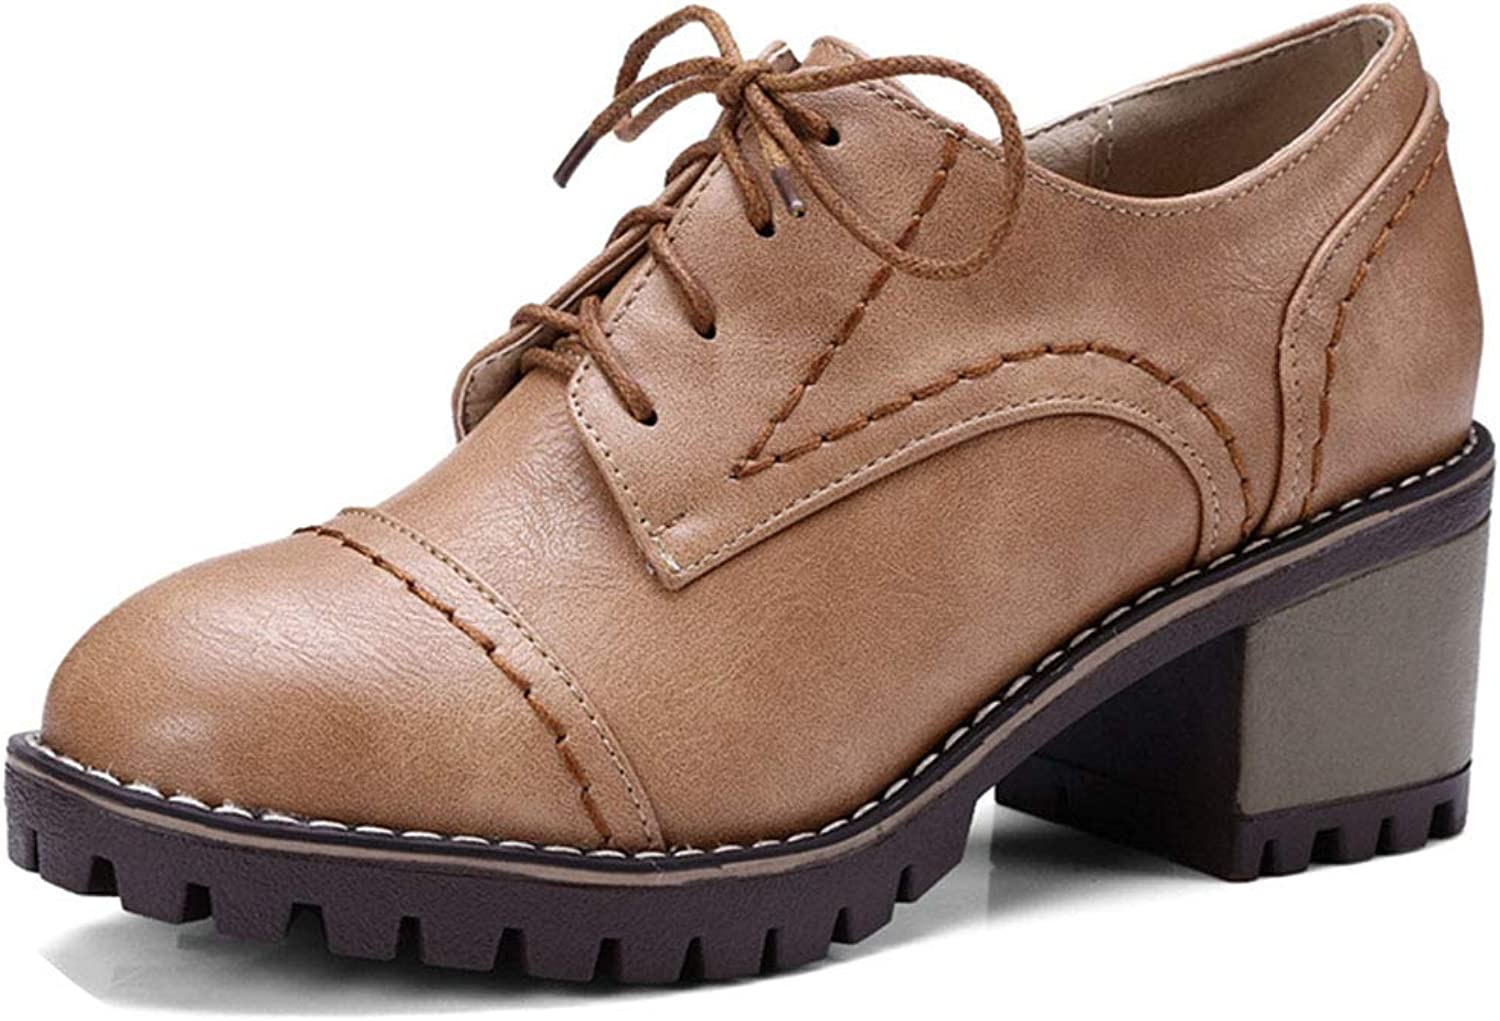 GIY Women's Classic Chunky Heel Ankle Booties Round Toe Lace up Slip-On Handmade Platform Oxford shoes